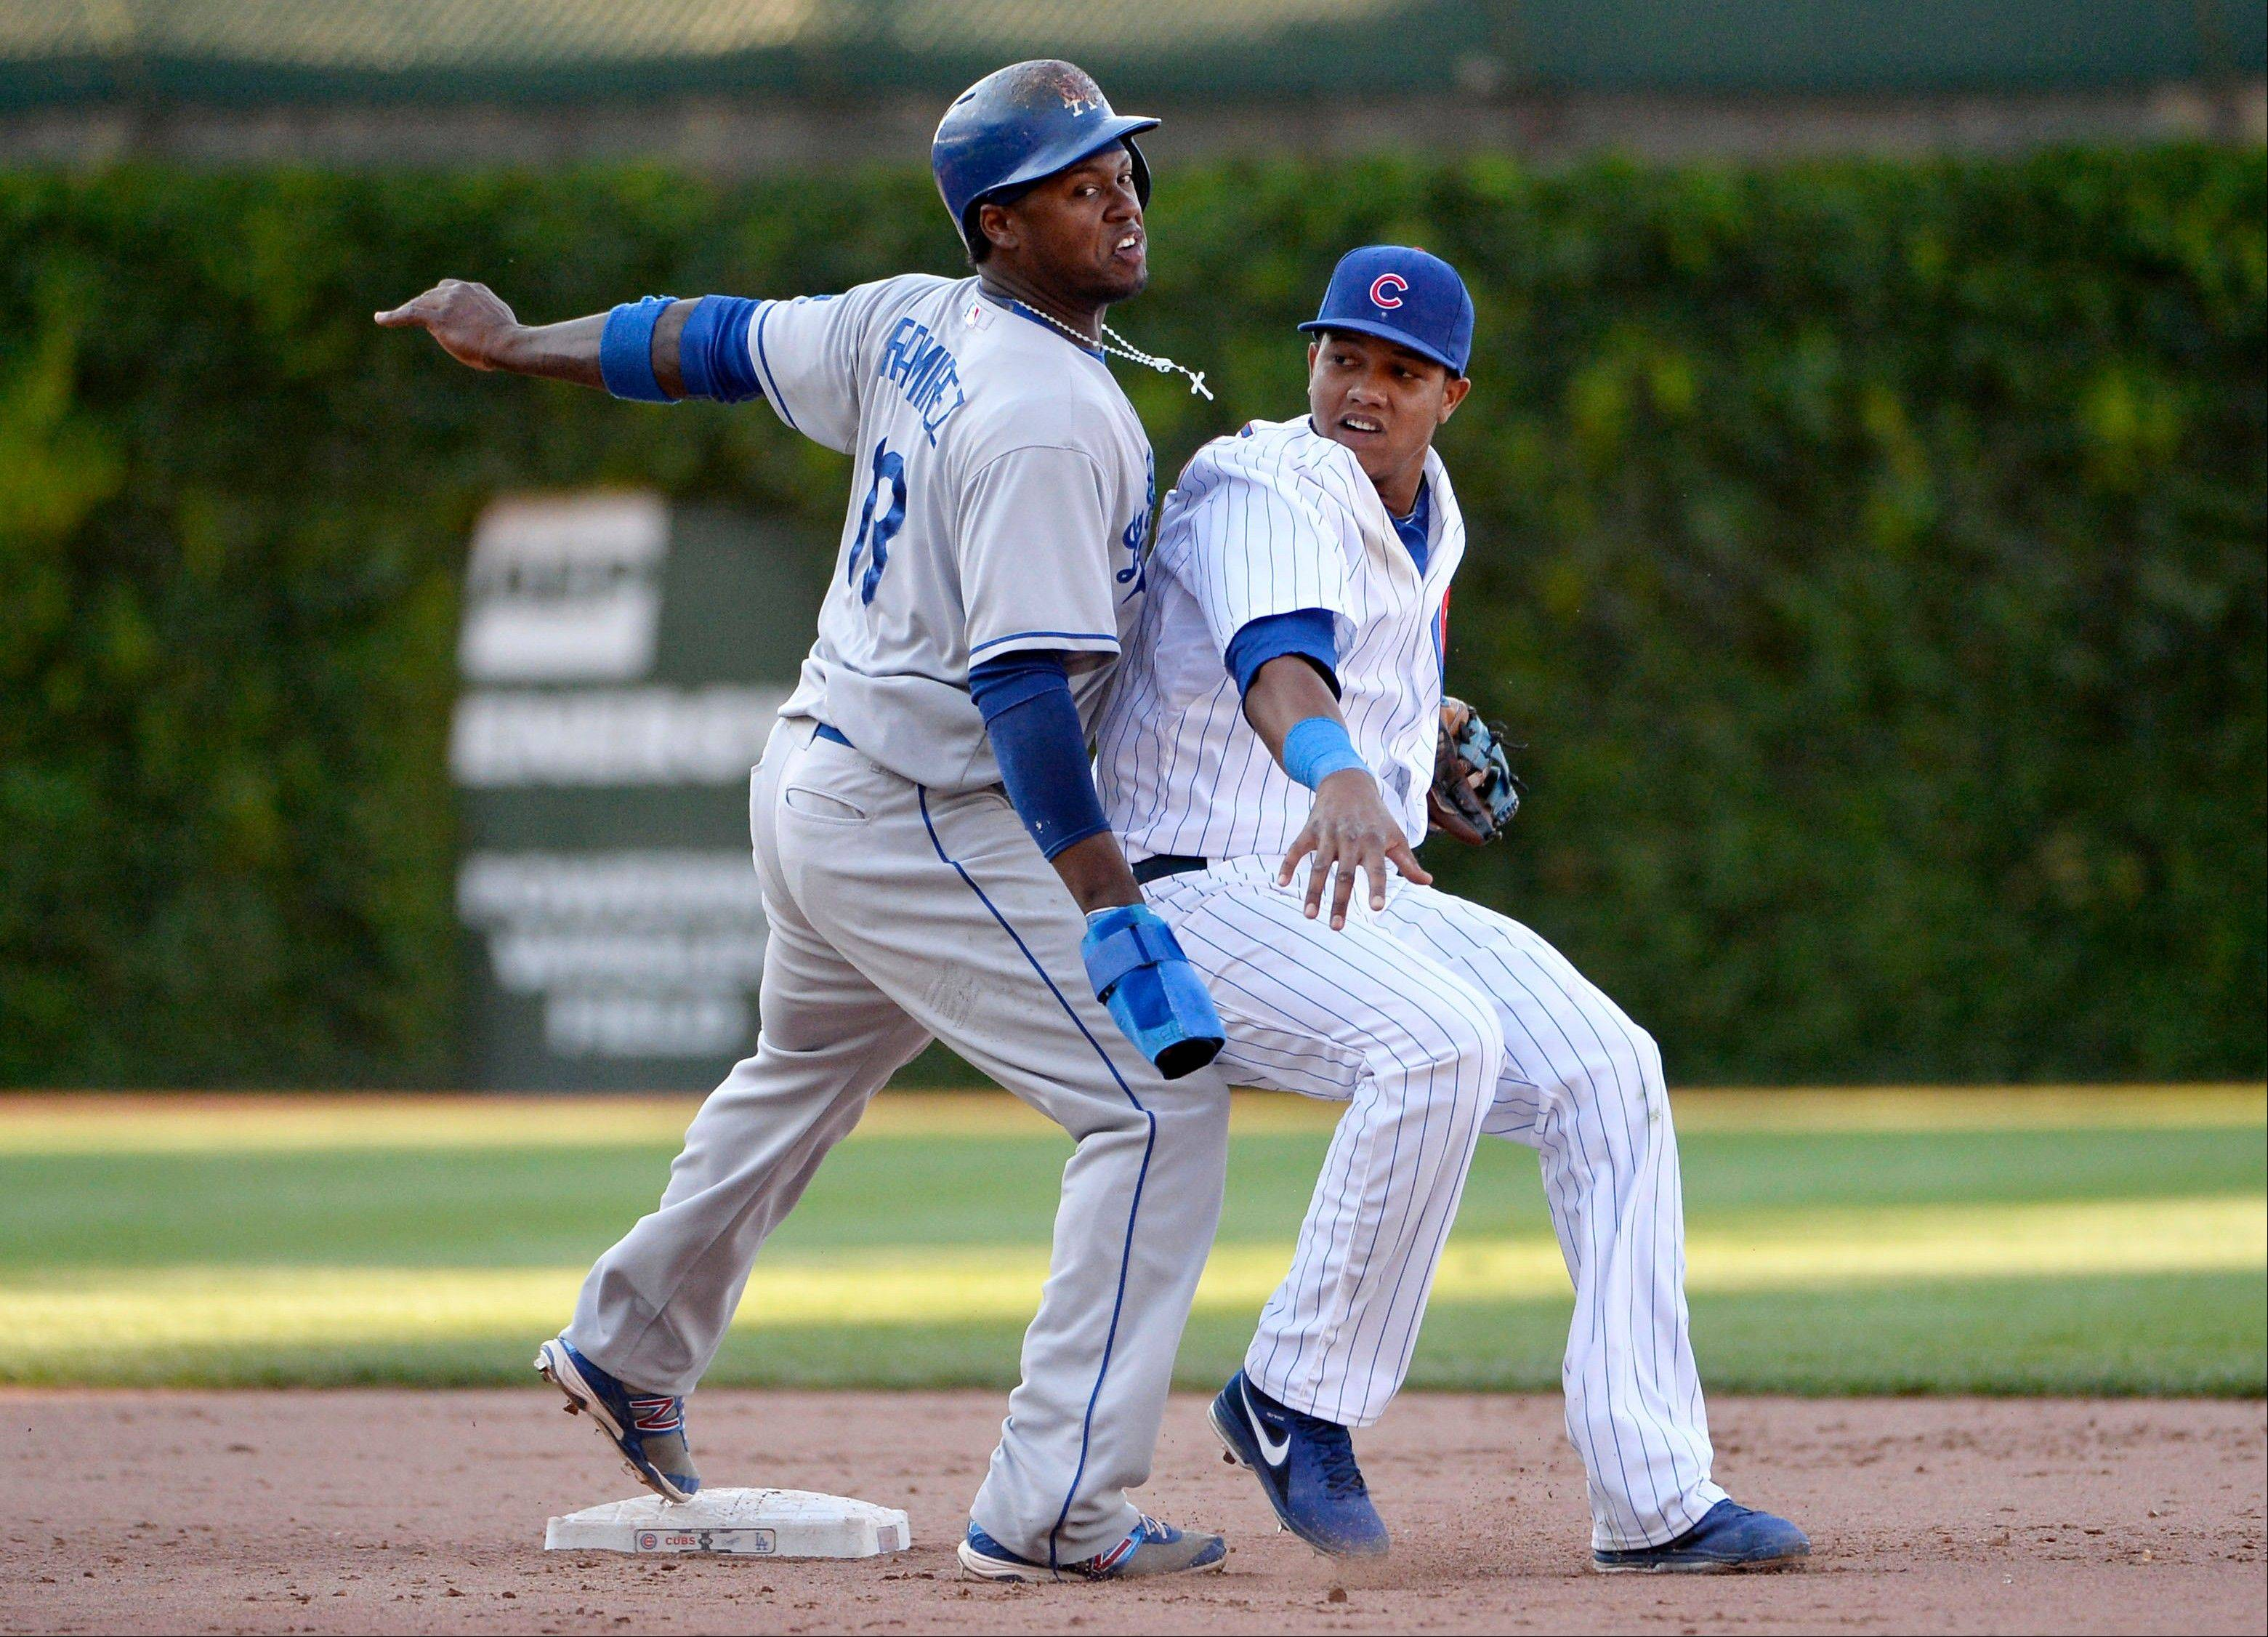 Los Angeles Dodgers� Hanley Ramirez, left, collides with Chicago Cubs shortstop Starlin Castro after Castro doubled him up at second base after catching a line drive hit by Adrian Gonzalez during the ninth inning of a baseball game, Saturday, Aug. 3, 2013, in Chicago.